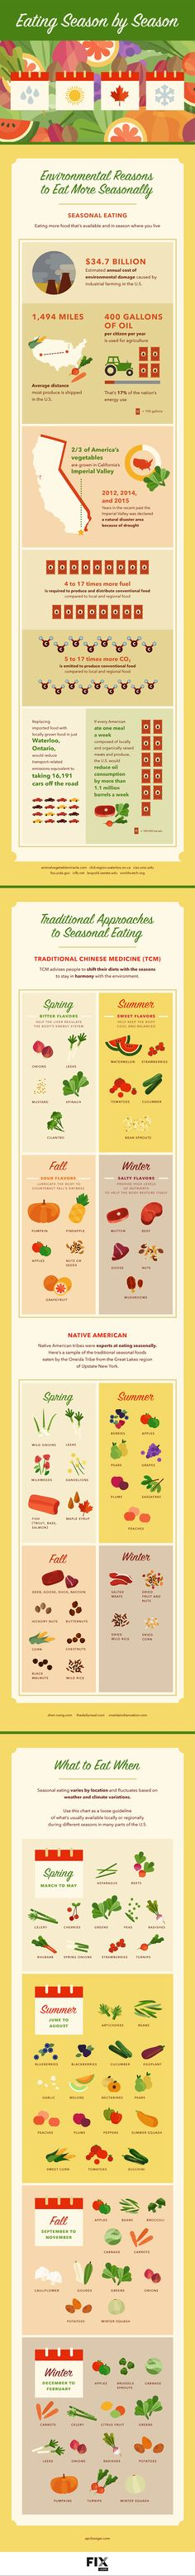 Eating seasonally is easier than you think and doesn't necessarily mean you can only eat what is growing outside at a certain time. Learn more about preserving your harvest, identifying seasonal foods, and the health benefits associated with this dietary change.